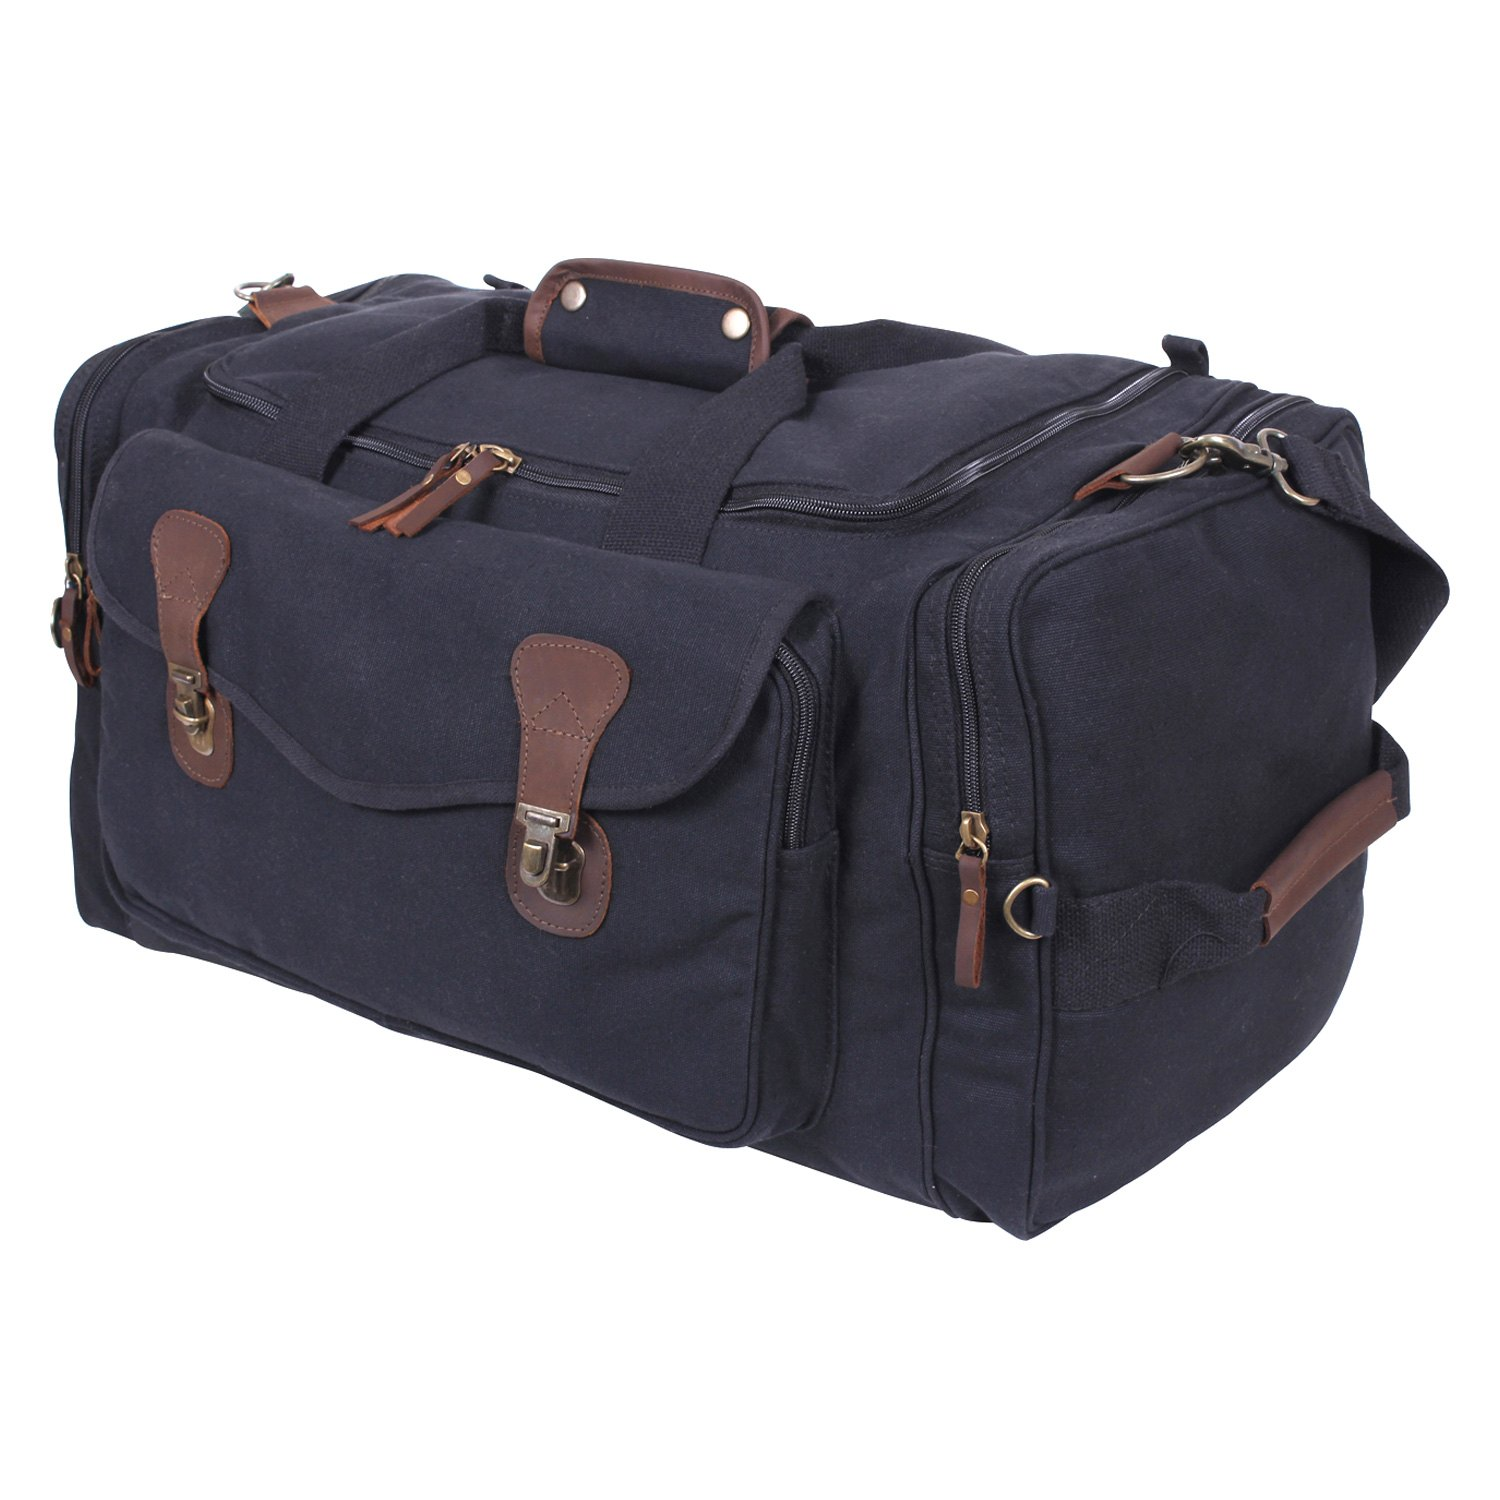 5d906f0b81 Rothco® - Canvas Long Weekend Bag - RECREATIONiD.com